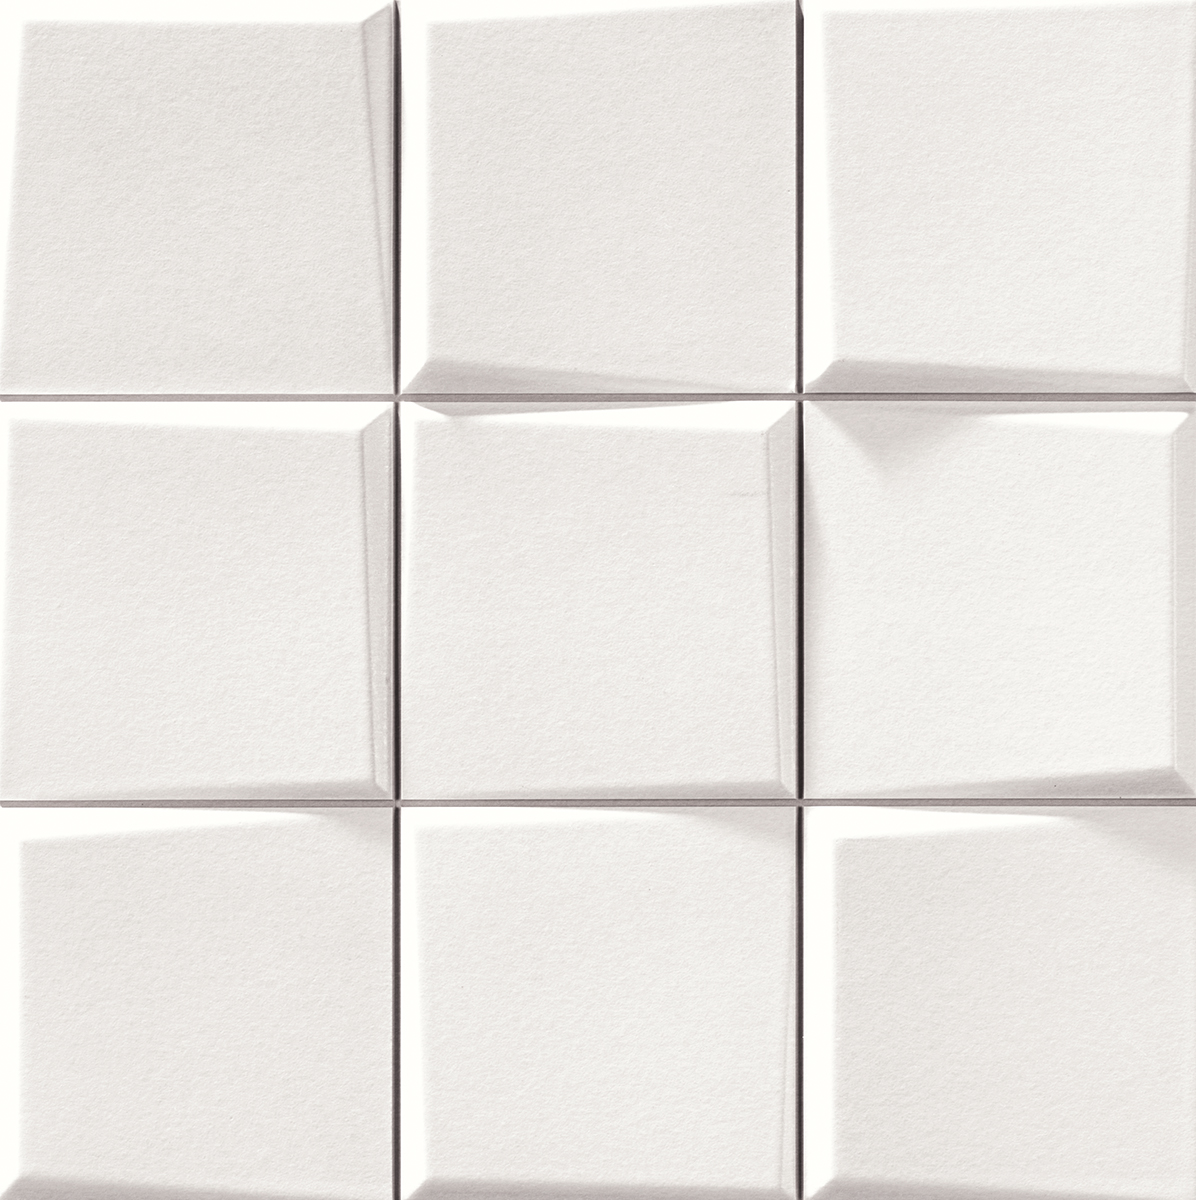 image/catalog/product_series_tiles/1428/PATTERN_BLANCO_33X33_smaller_-edited-.jpg